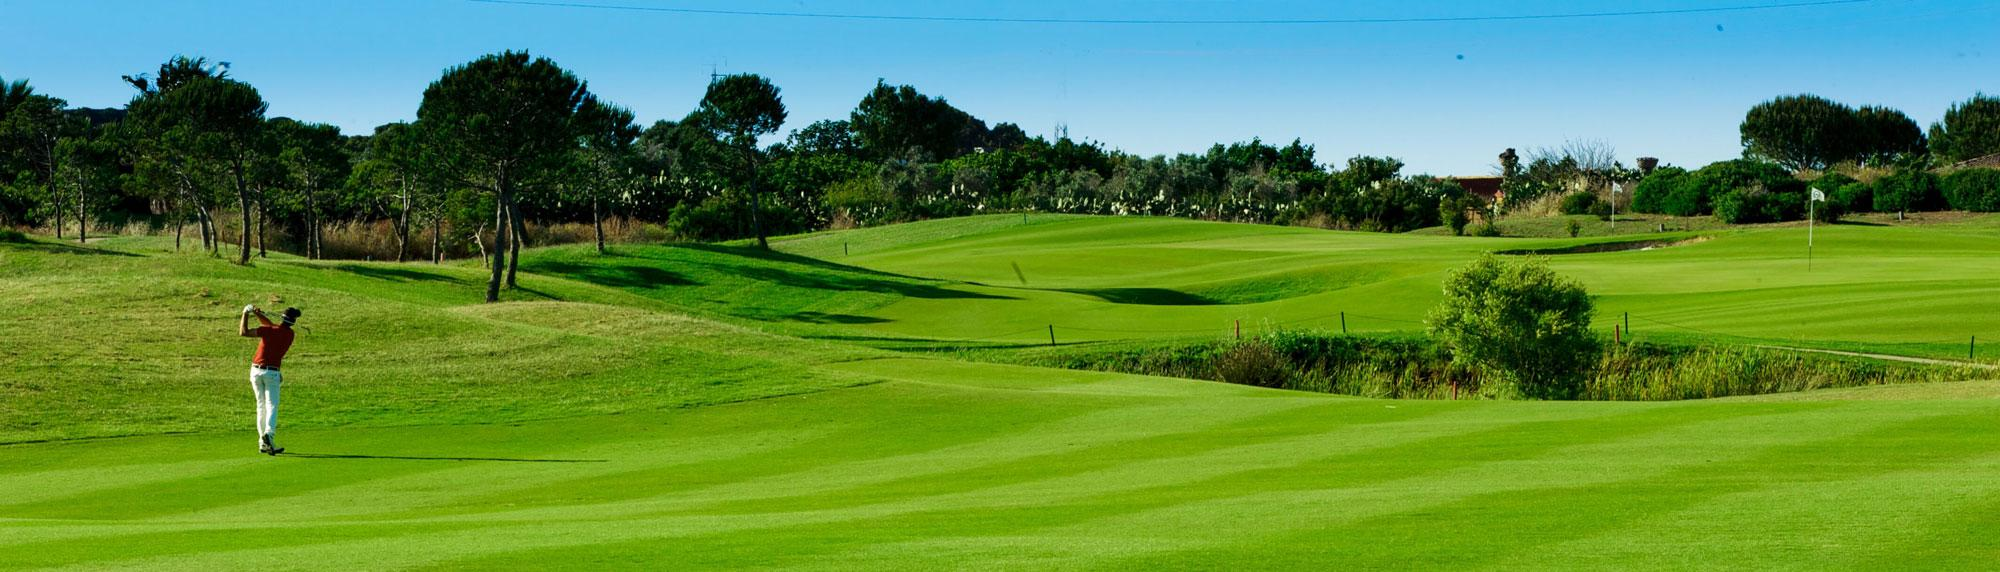 View Golf La Estancia's impressive golf course situated in brilliant Costa de la Luz.